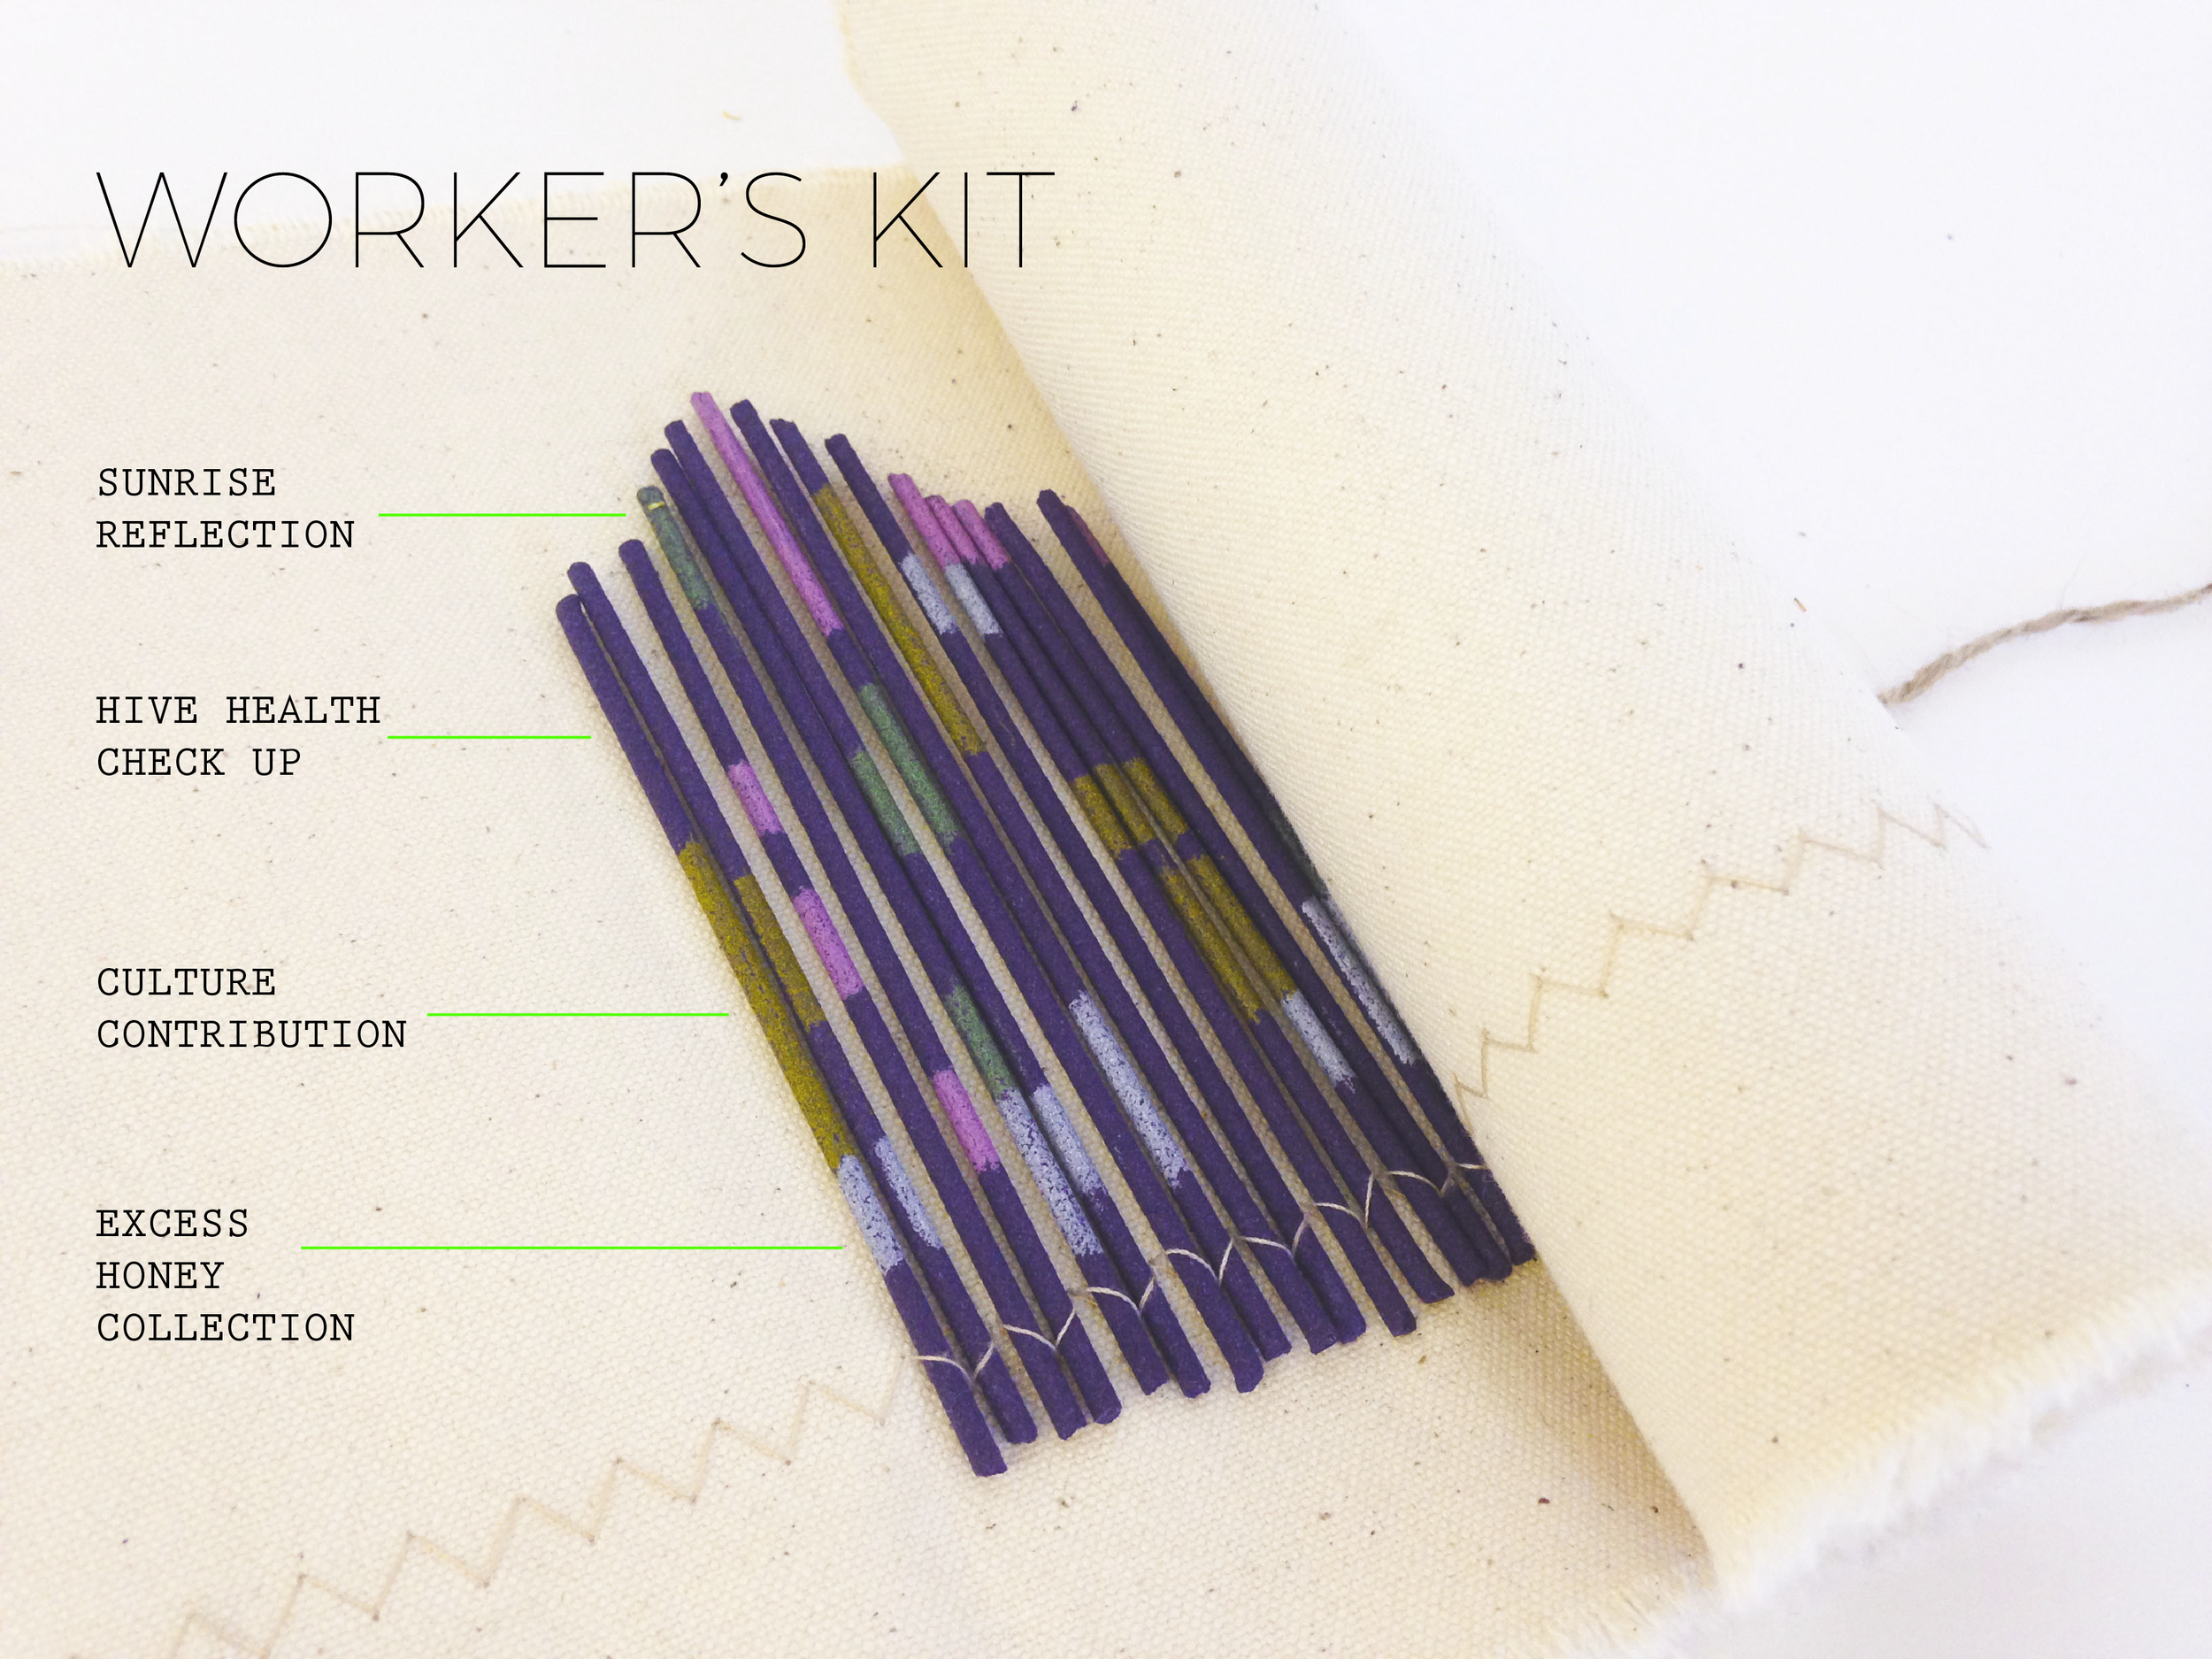 This Worker's Kit provides each employee with a pre-determined, daily work agenda. Workers follow the color codes of each incense stick and plug them into their headwear. Materials used include canvas, cotton string, twine, incense sticks and chalk.